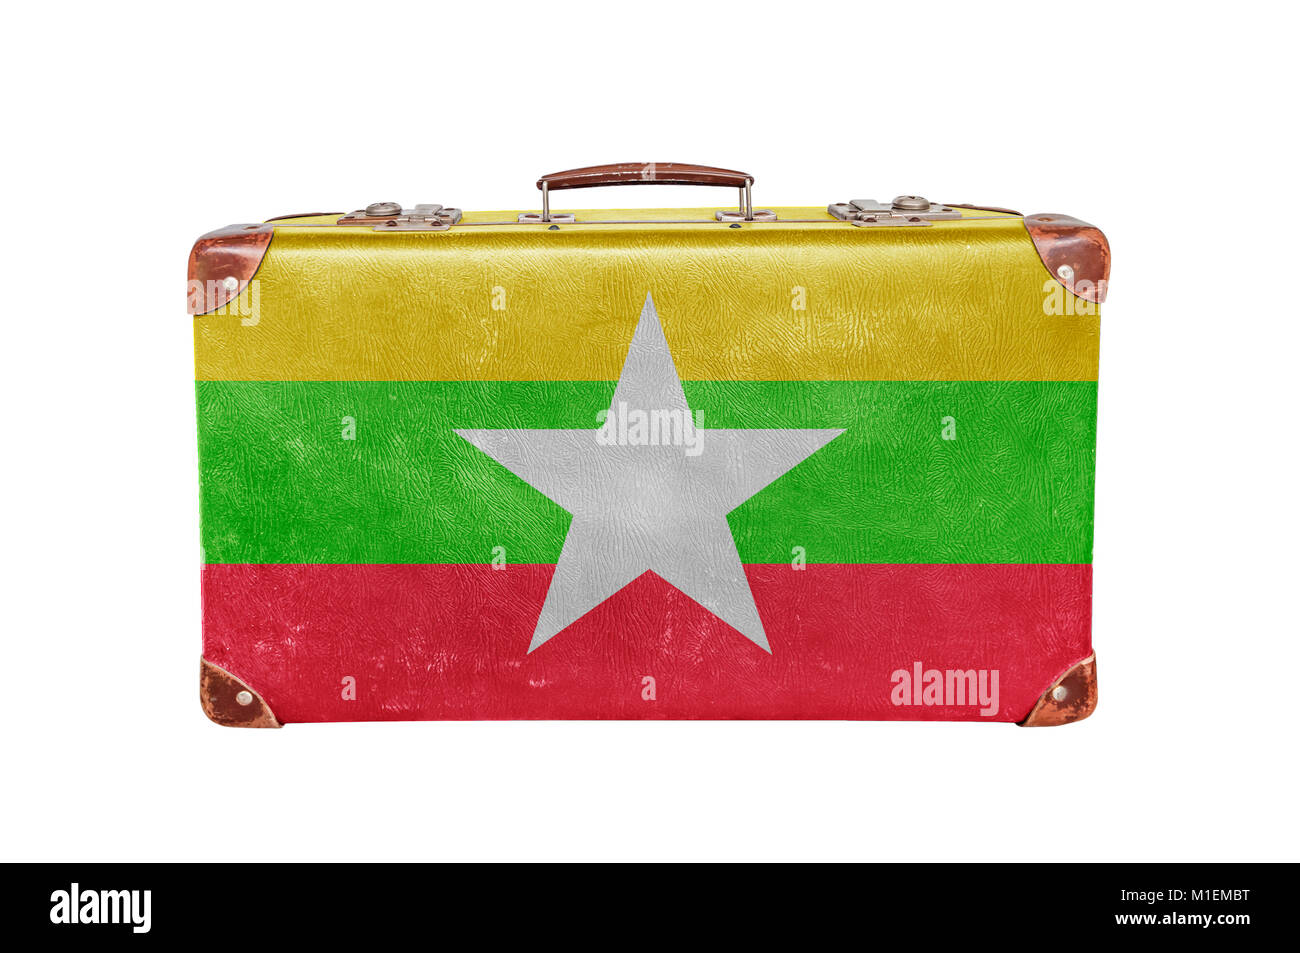 Vintage suitcase with Myanmar flag - Stock Image